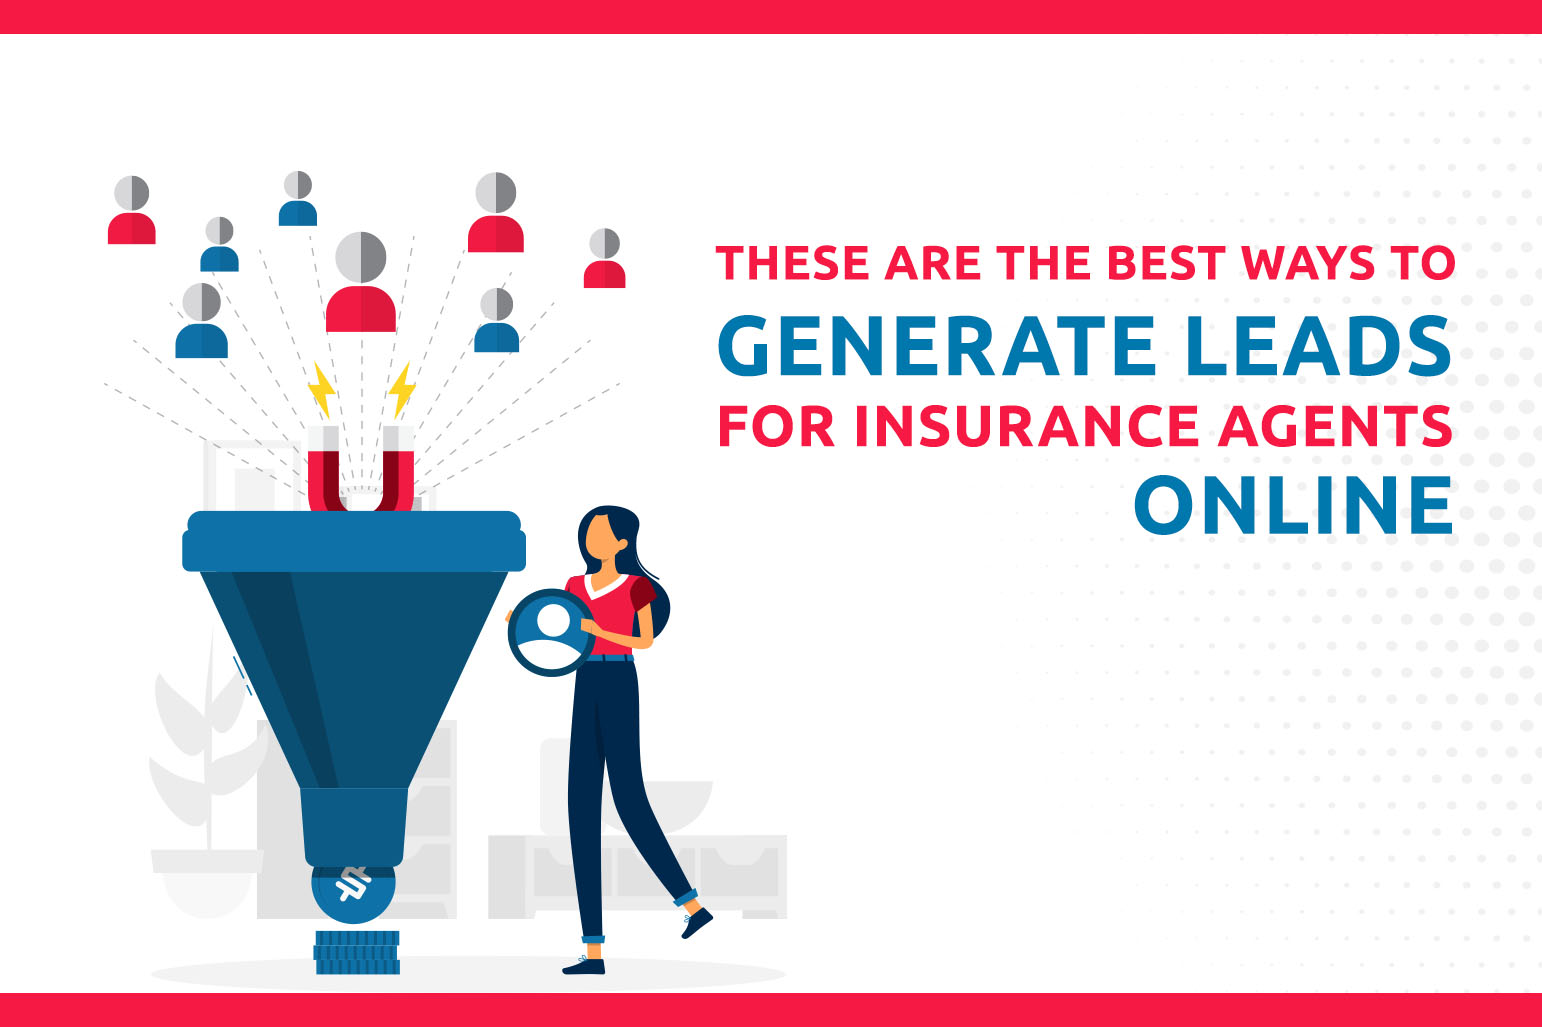 These Are The Best Ways To Generate Leads For Insurance Agents Online